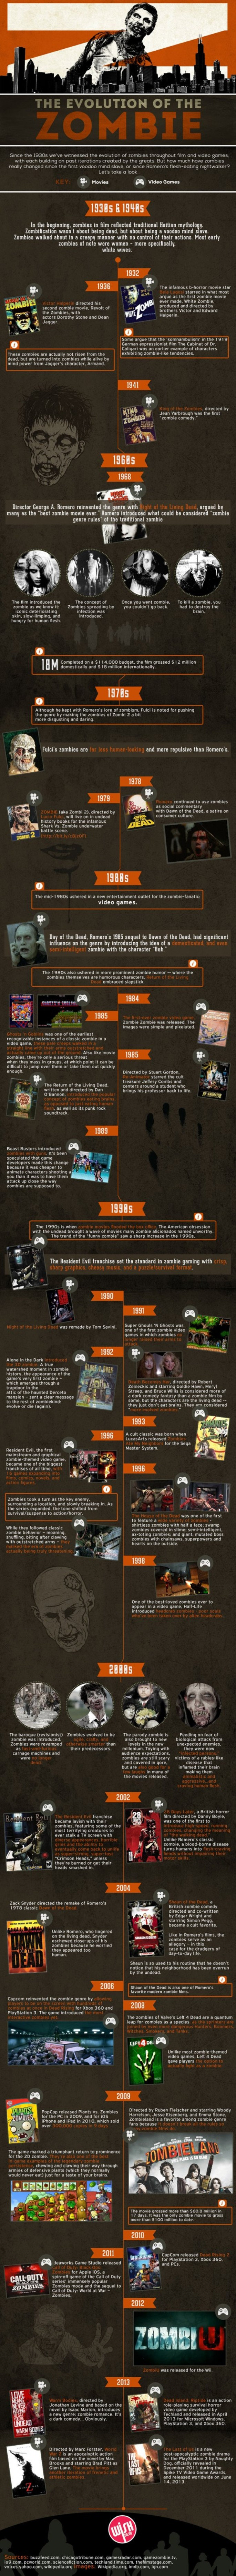 the-evolution-of-the-zombie-infographic_529c57b52ed59_w1500